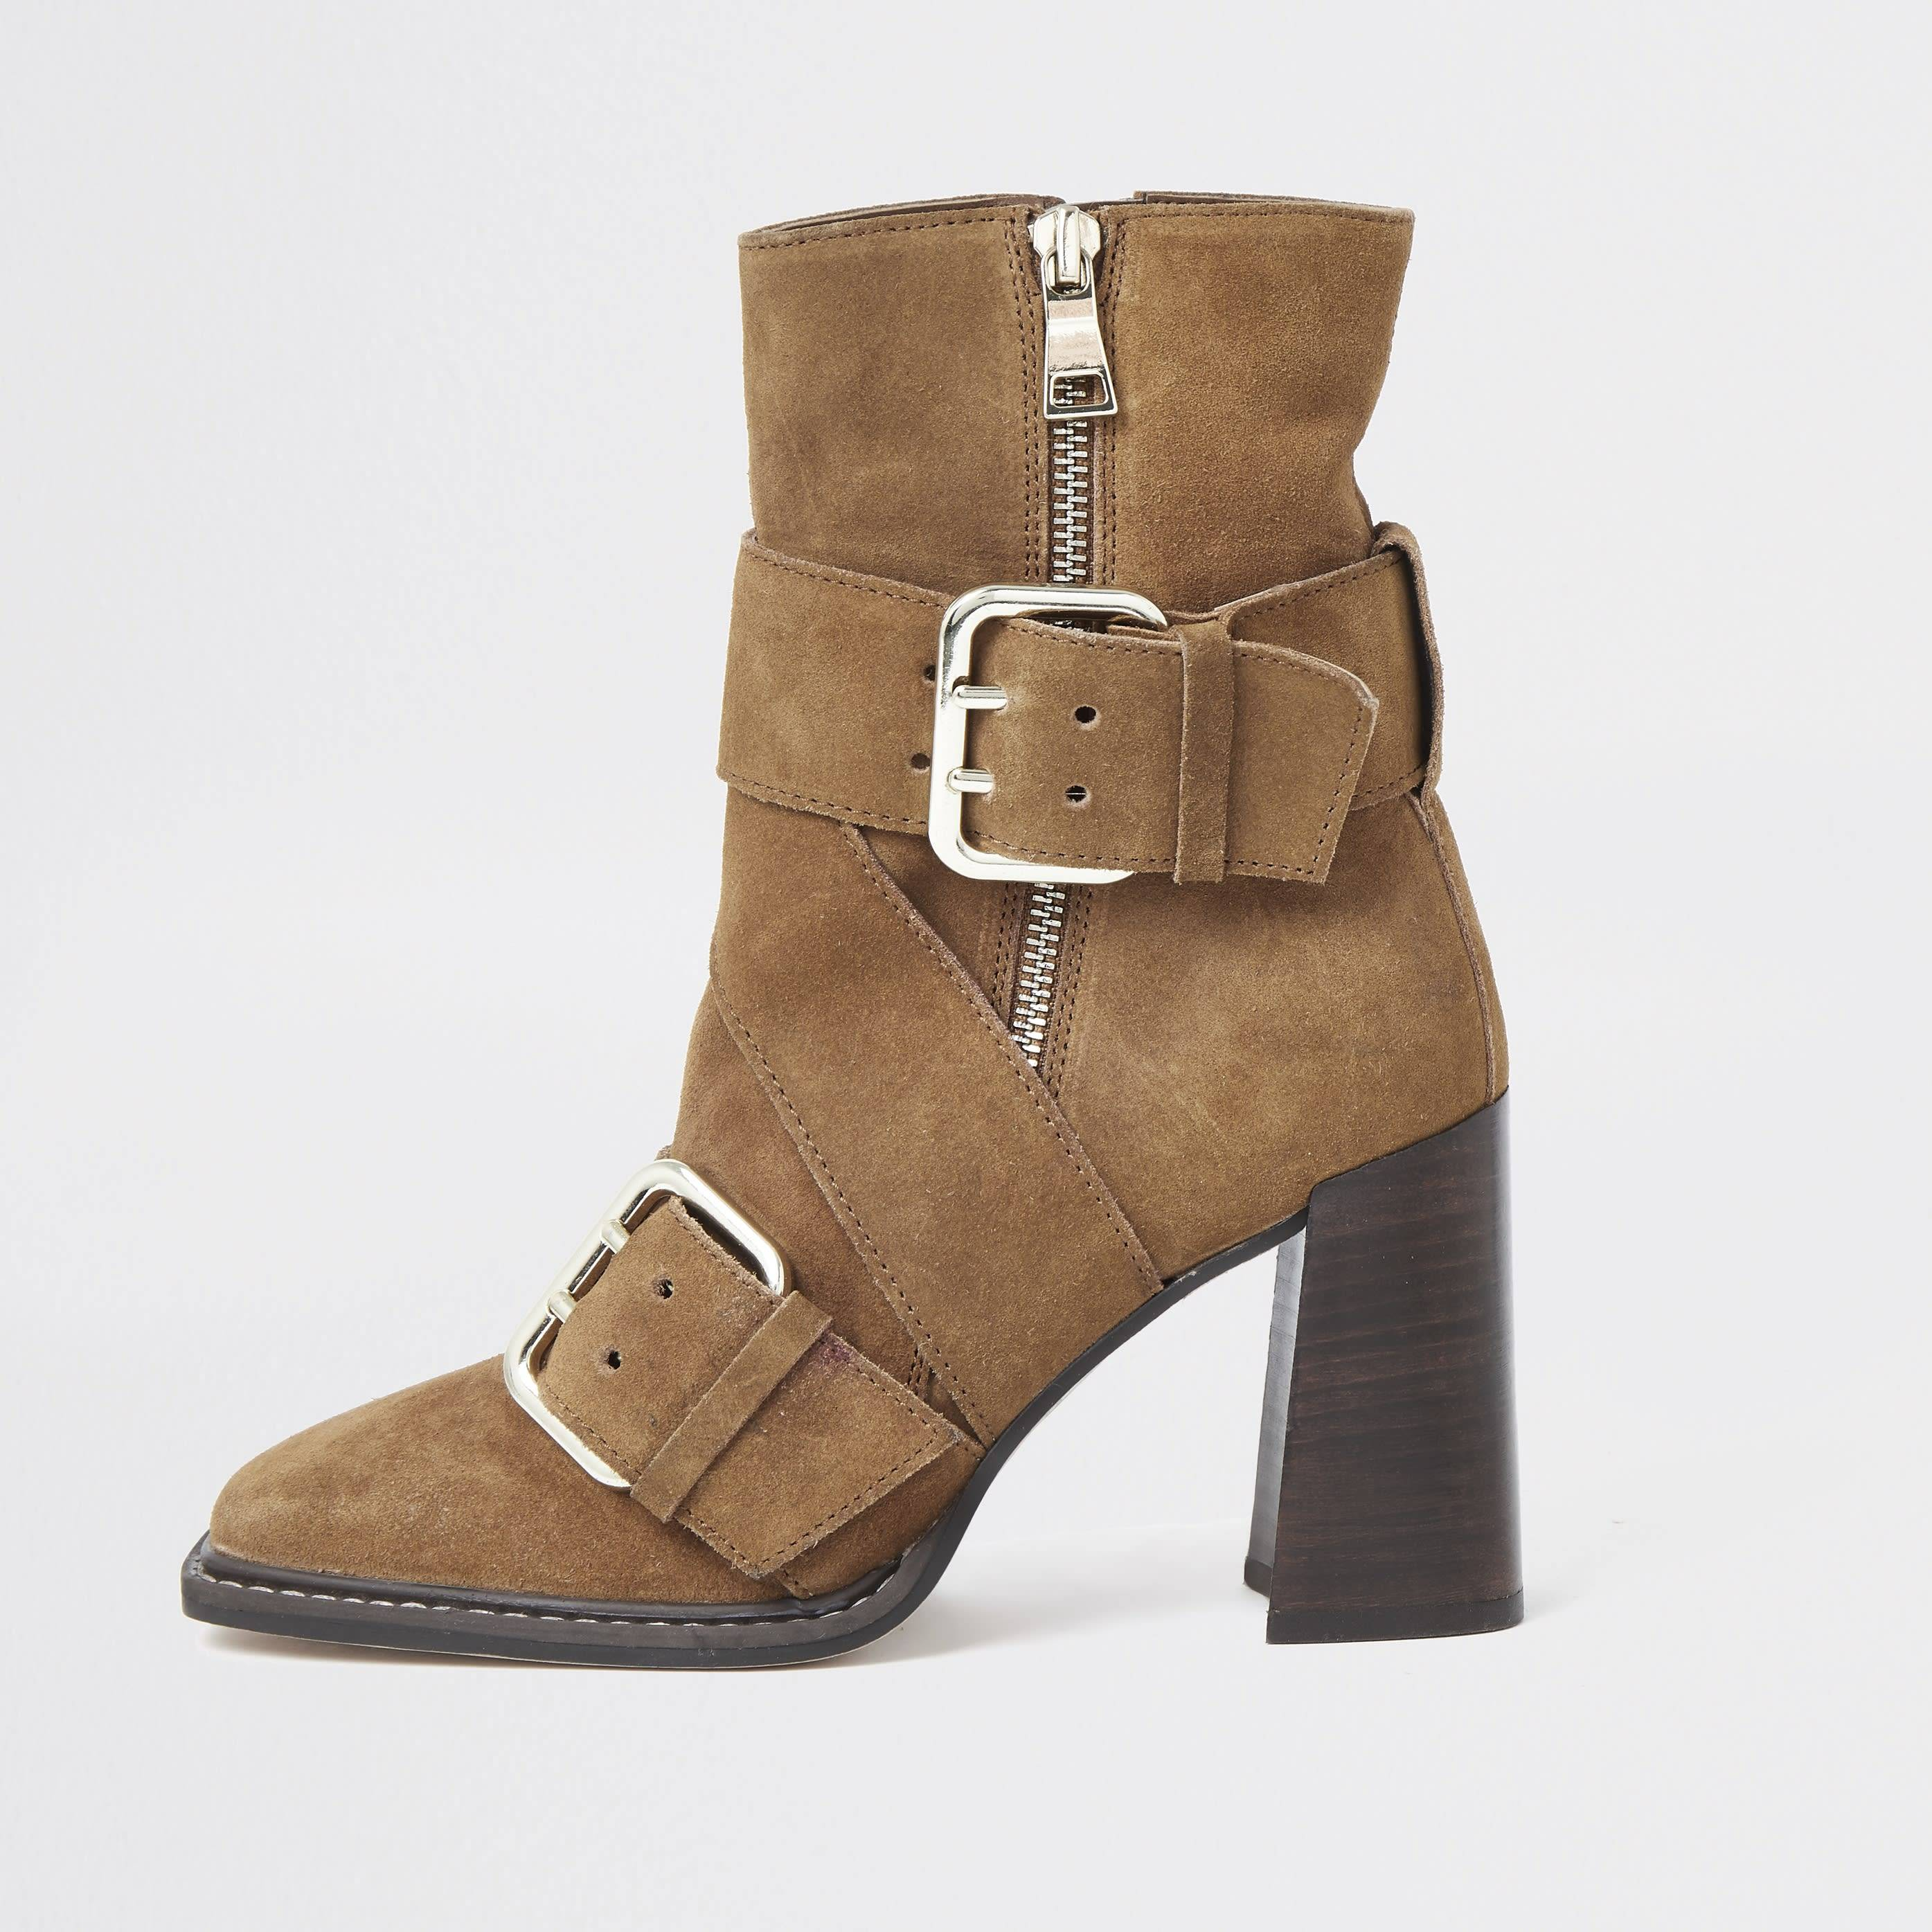 river island Womens Rust suede buckle square toe boot (9)